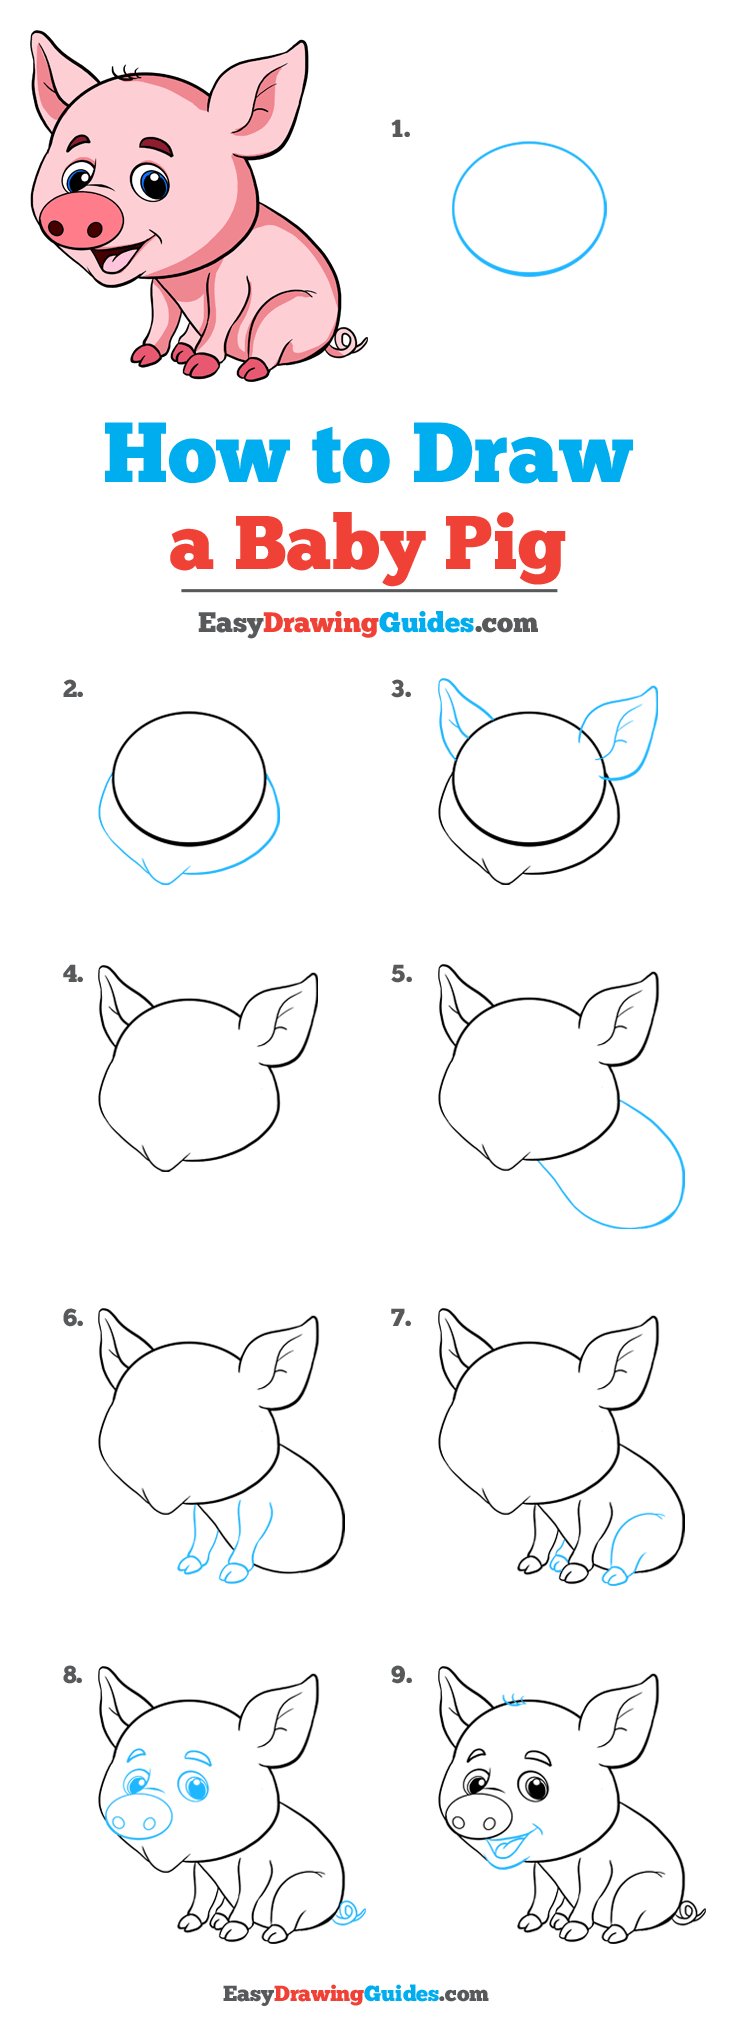 How to Draw a Baby Pig Step by Step Tutorial Image